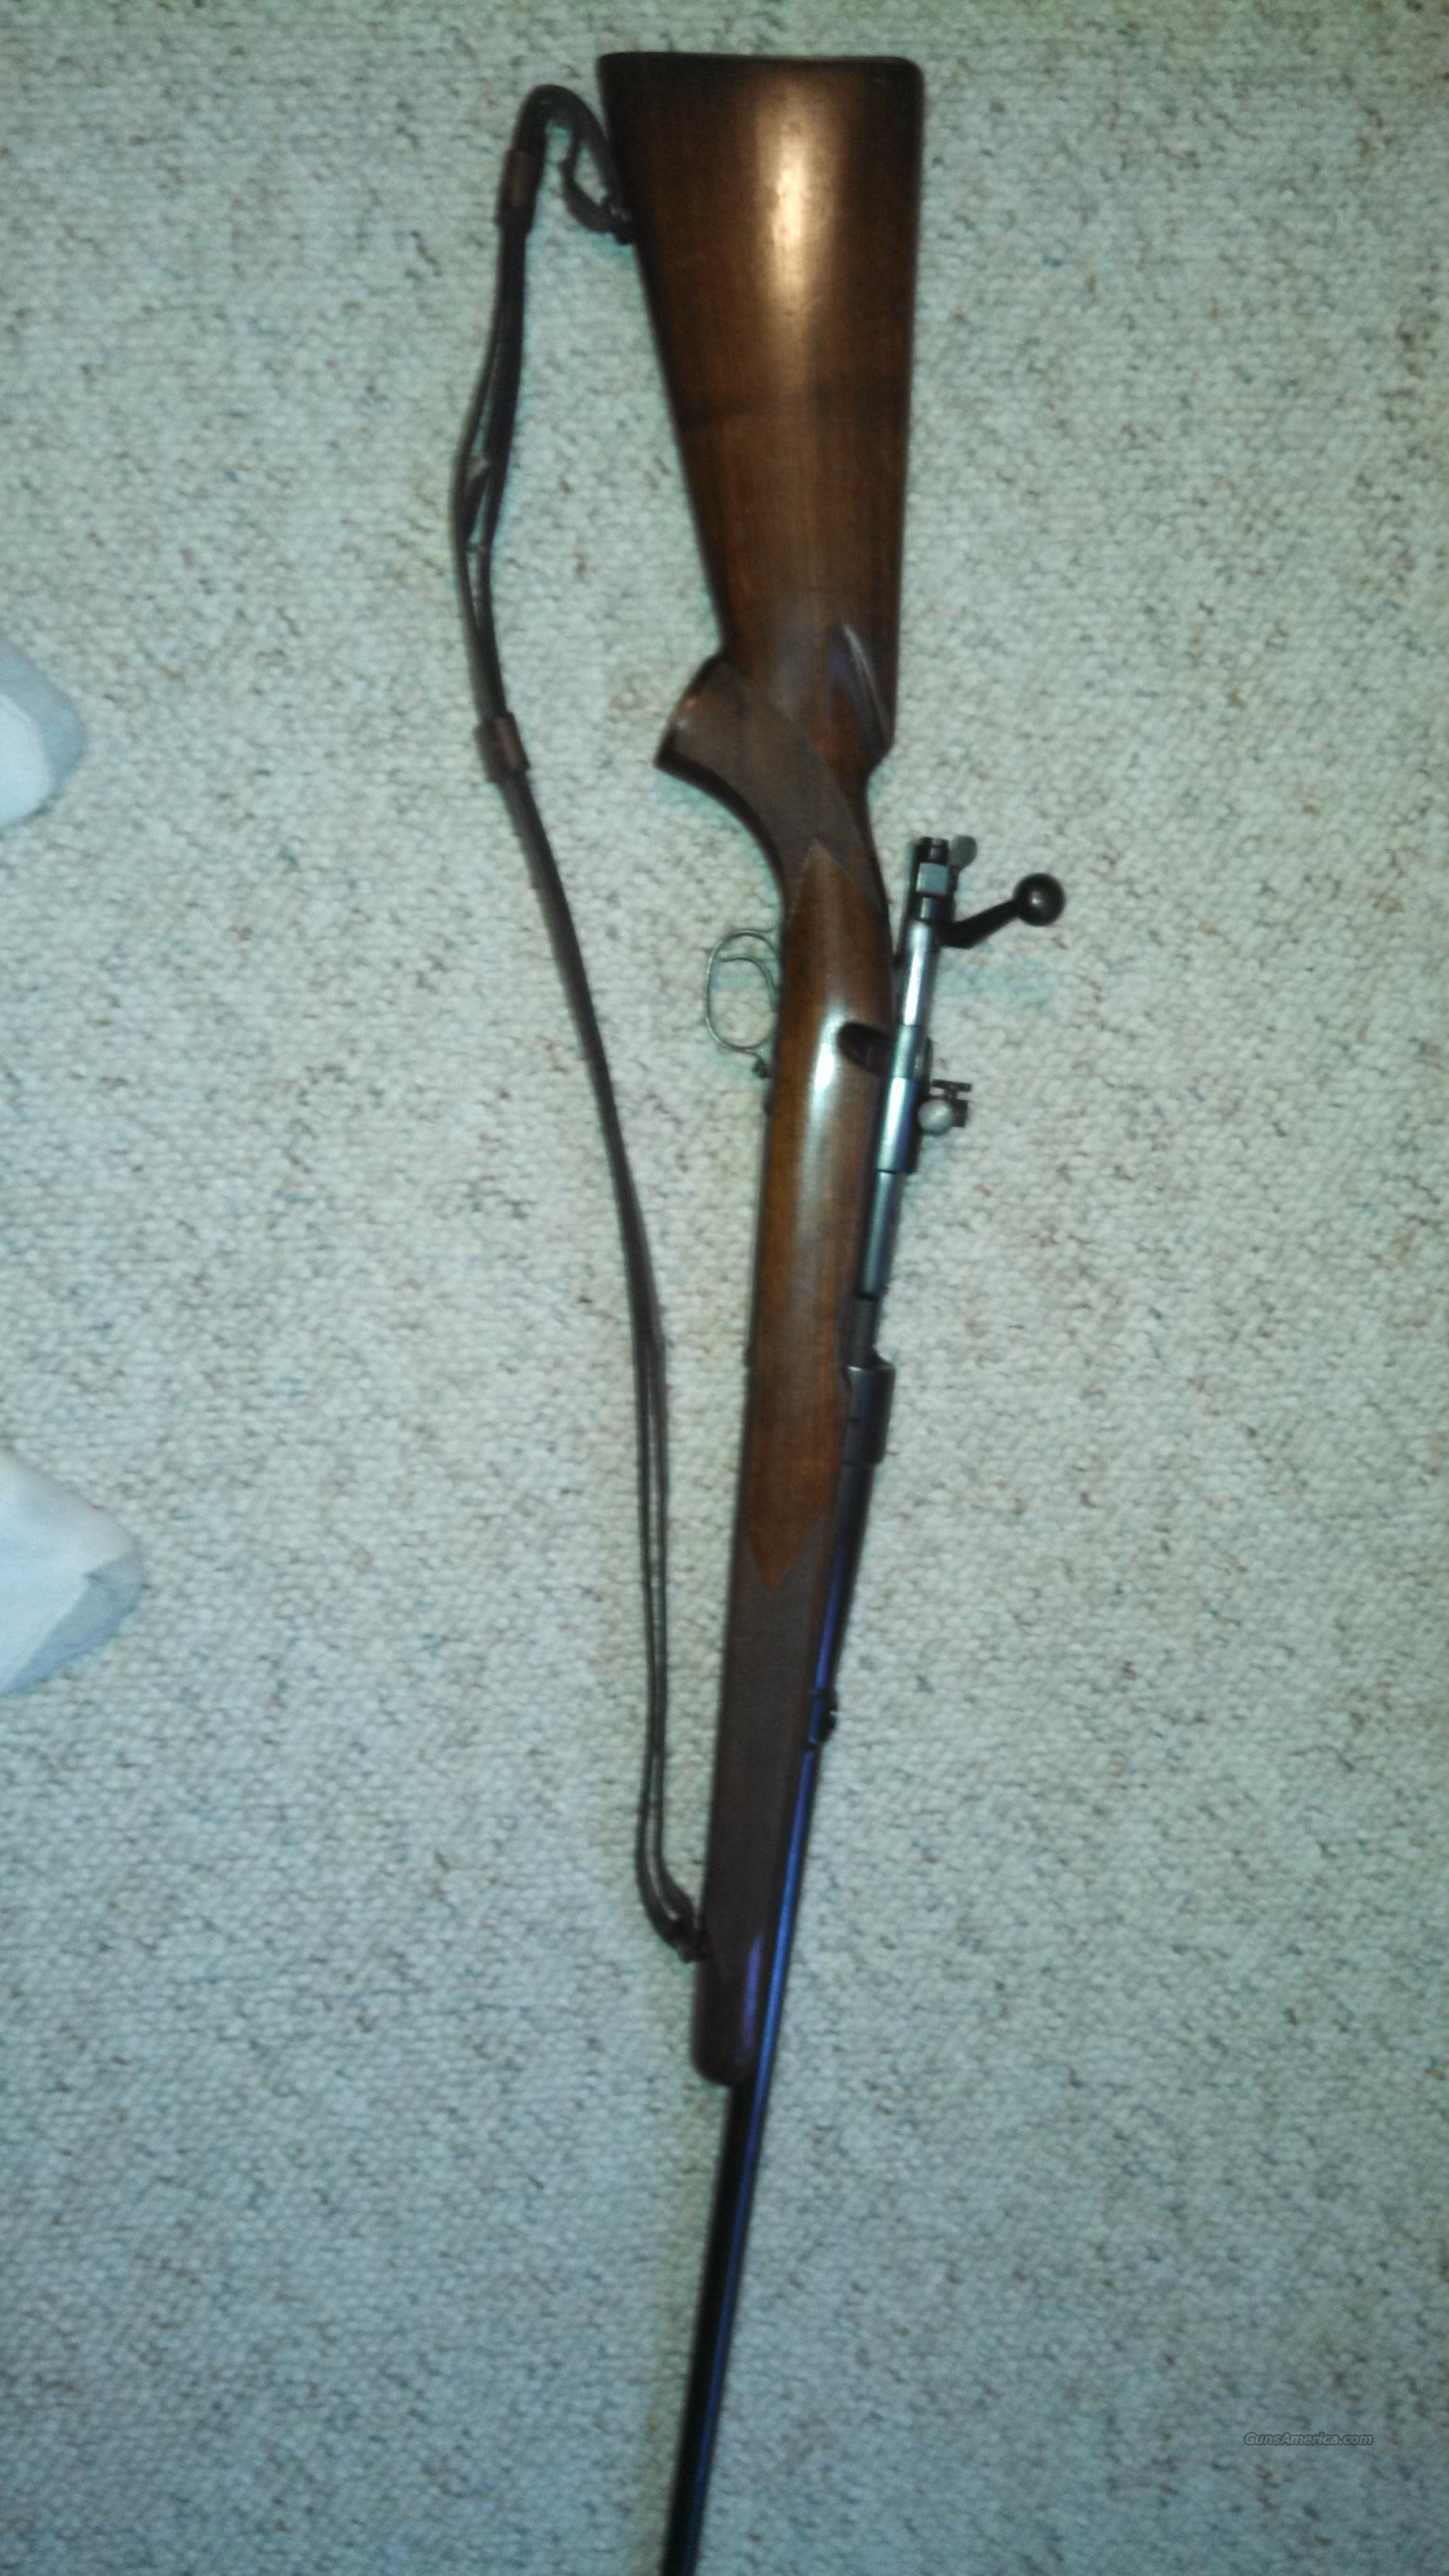 Win. M 70 .270  (1937)  GOOD CONDITION  Guns > Rifles > Winchester Rifles - Modern Bolt/Auto/Single > Model 70 > Pre-64